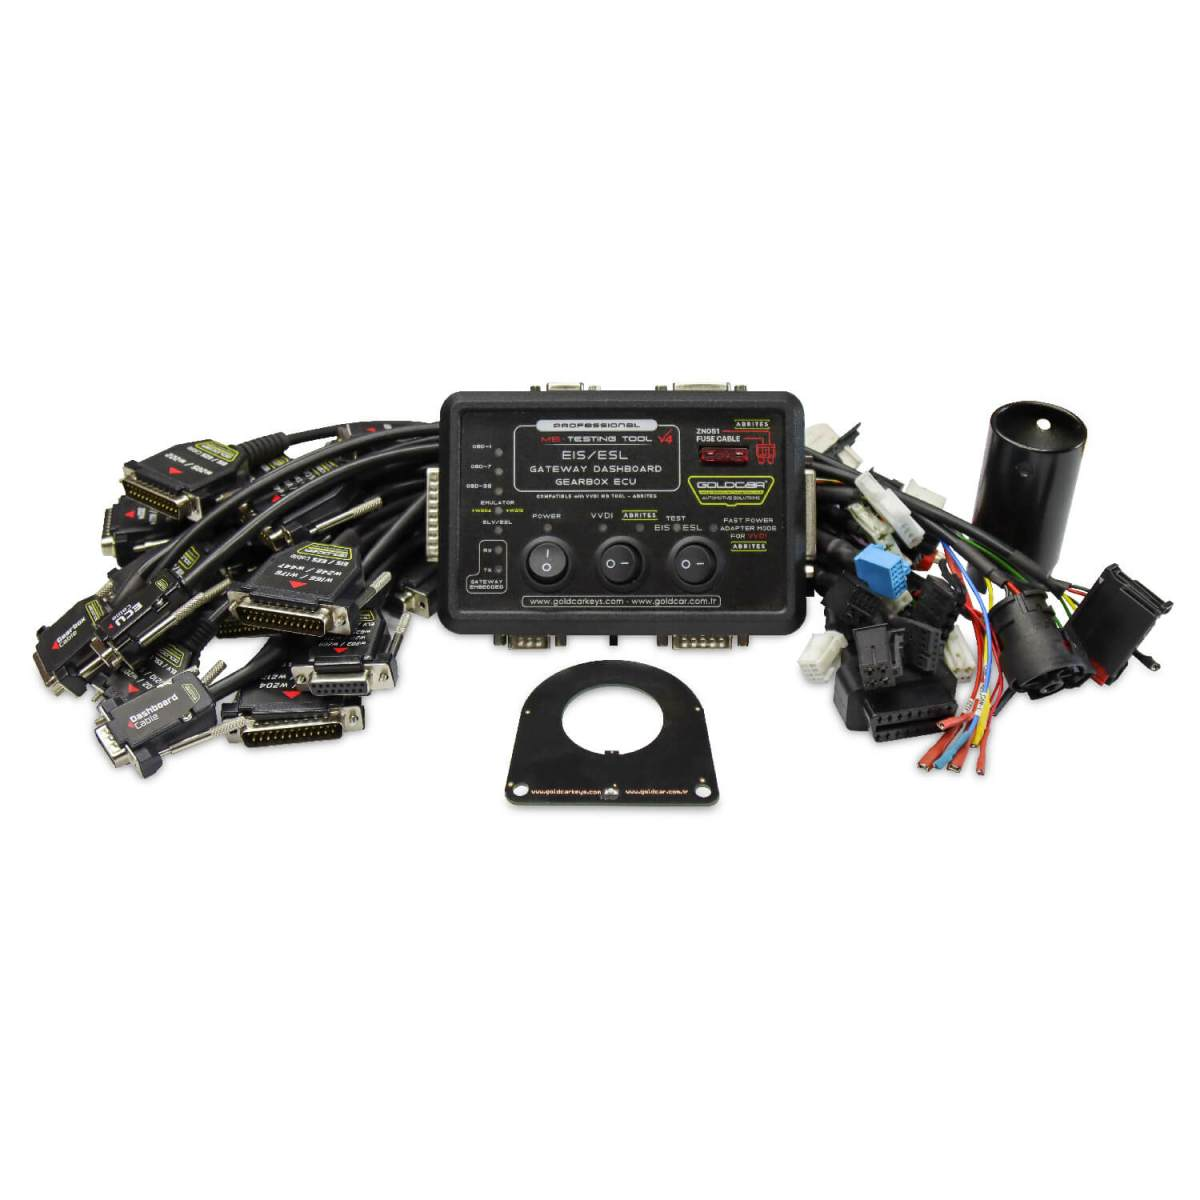 professional-mb-testing-tool-eis-esl-gateway-dashboard-gearbox-ecu-compatible-with-vvdi-mb-tool-abrites-scaled